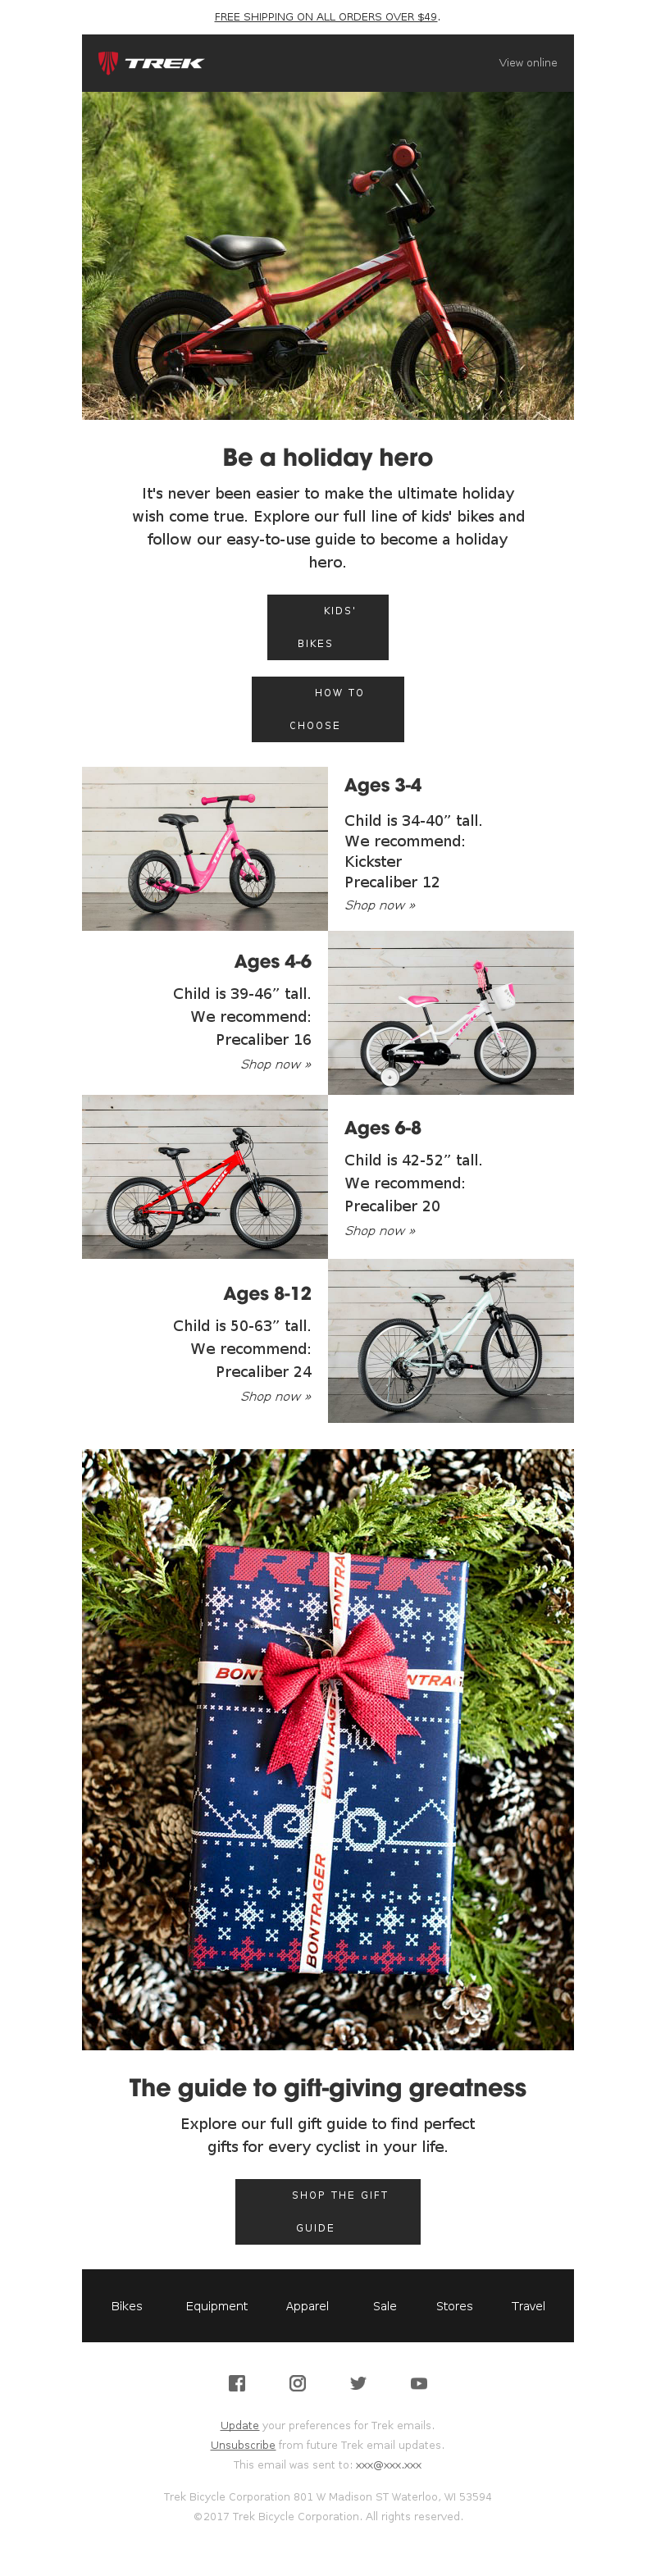 Trek Bicycle - The gift they'll never forget